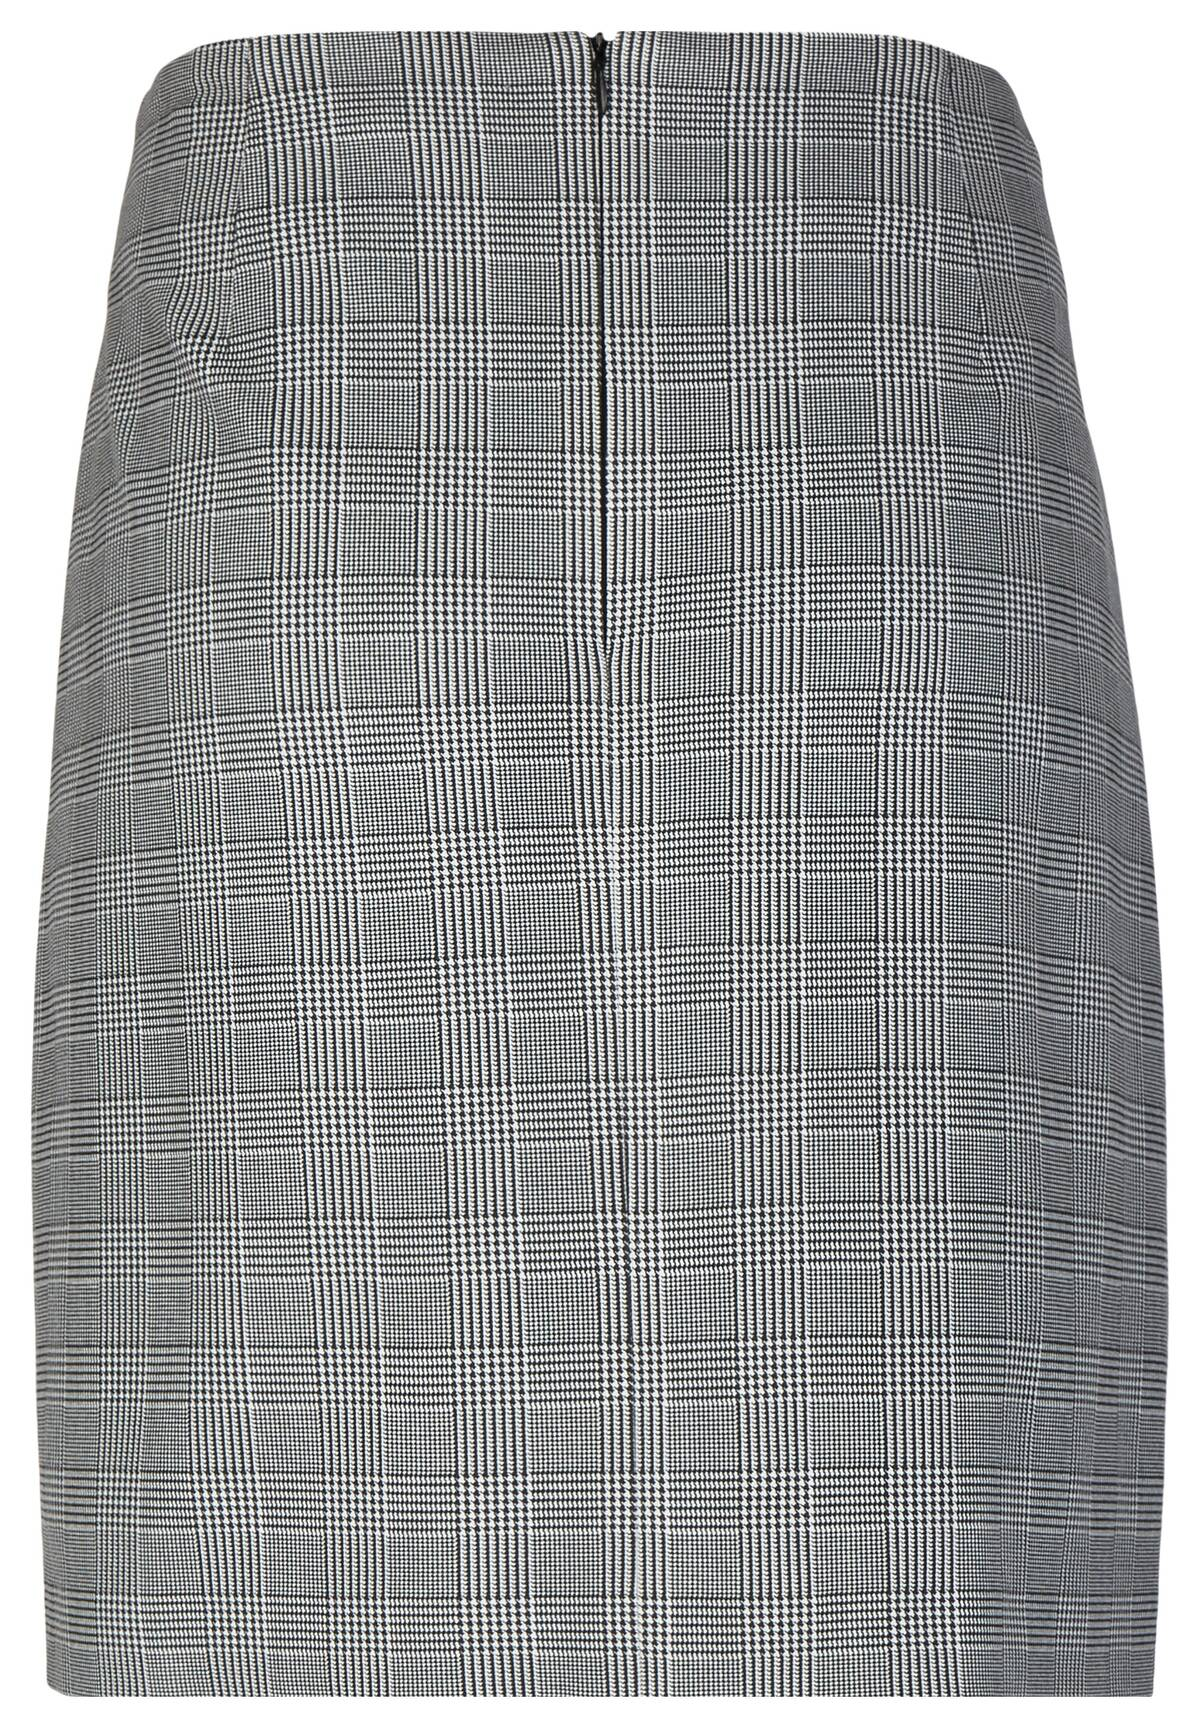 Modischer Rock / Skirt